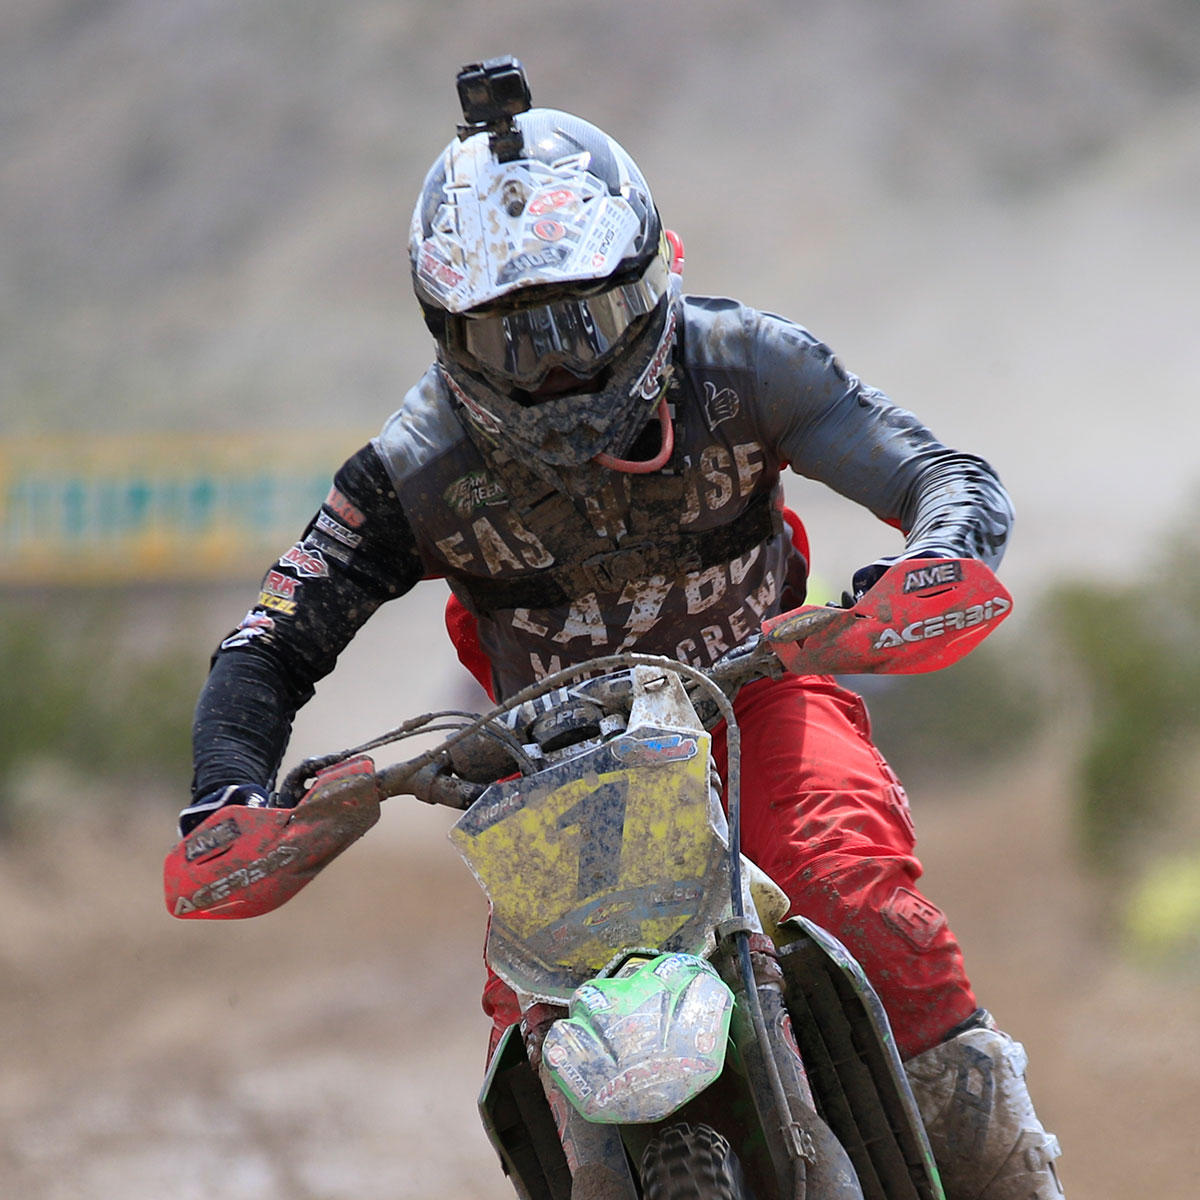 29 Palms NGPC Race Report